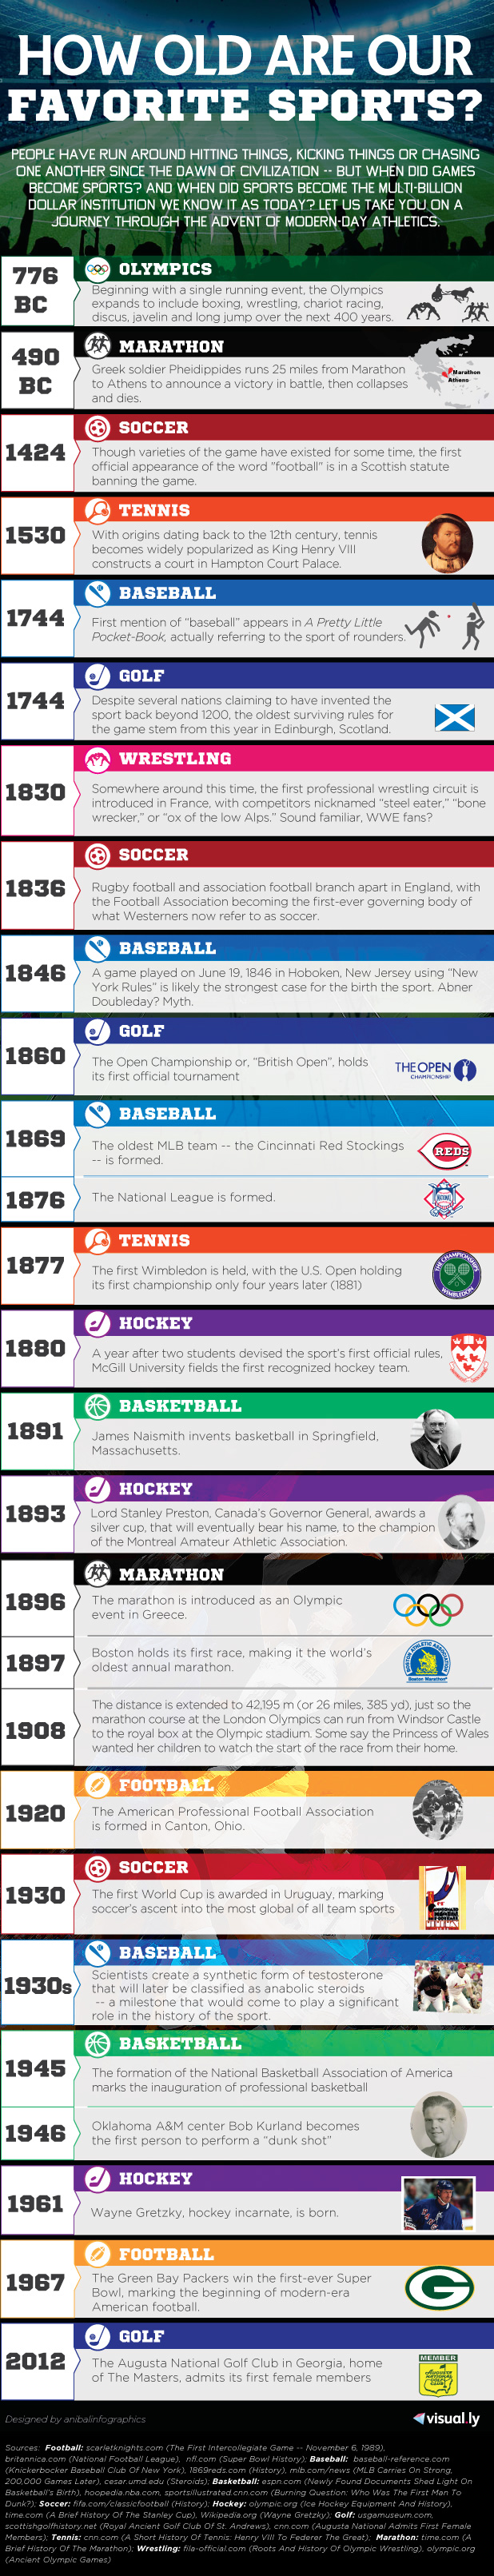 how-old-are-our-favorite-sports